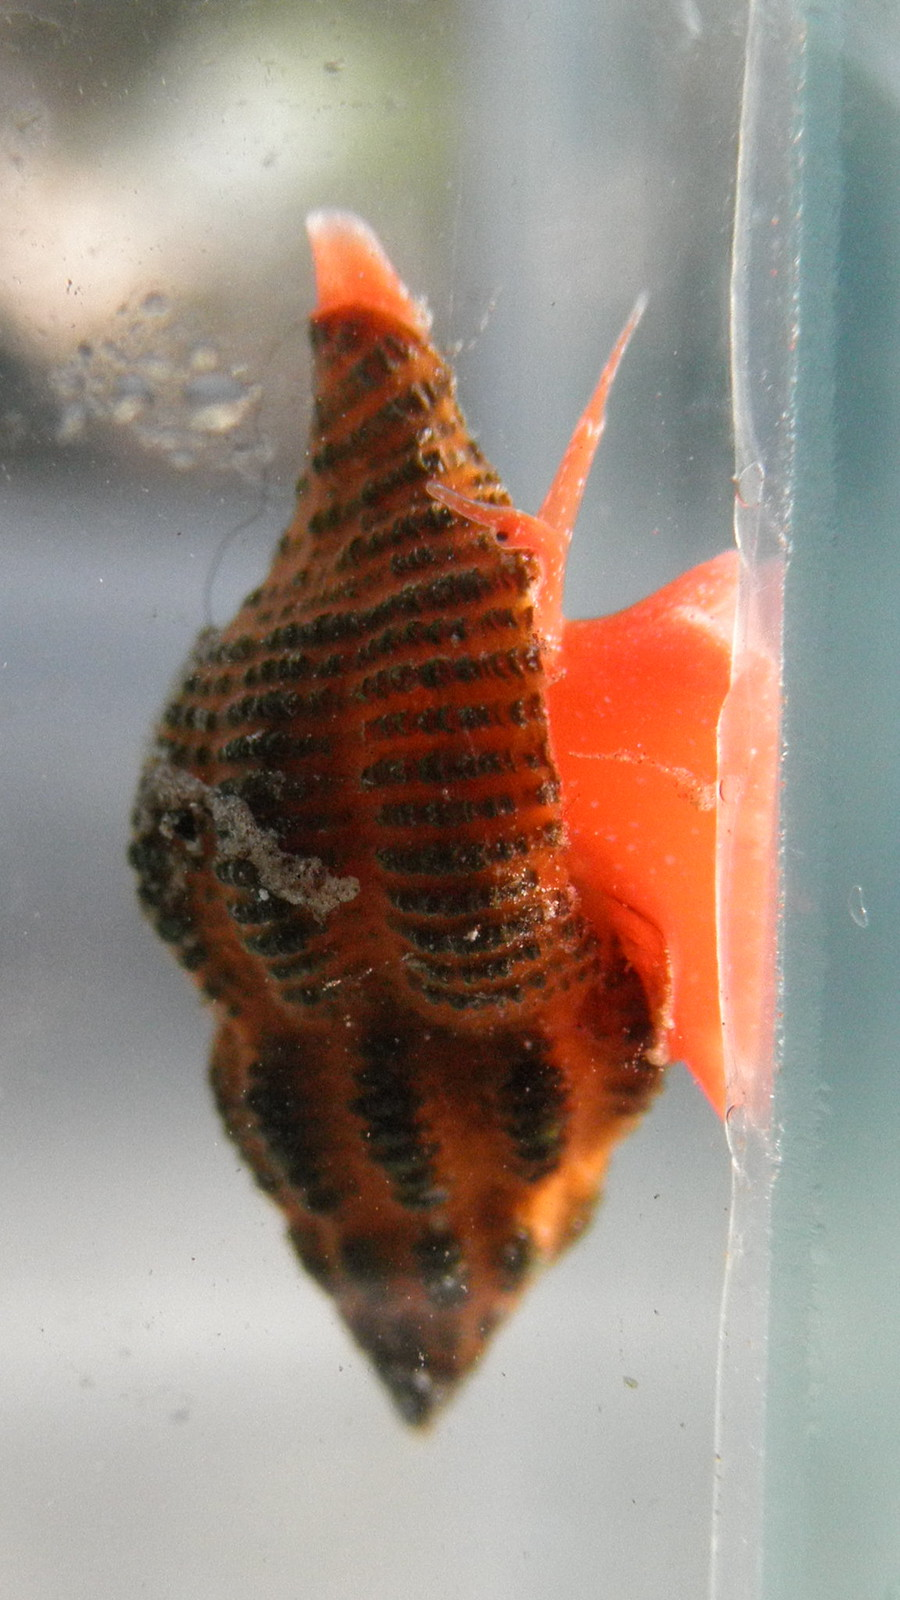 Right side view of Ocinebrina aciculata